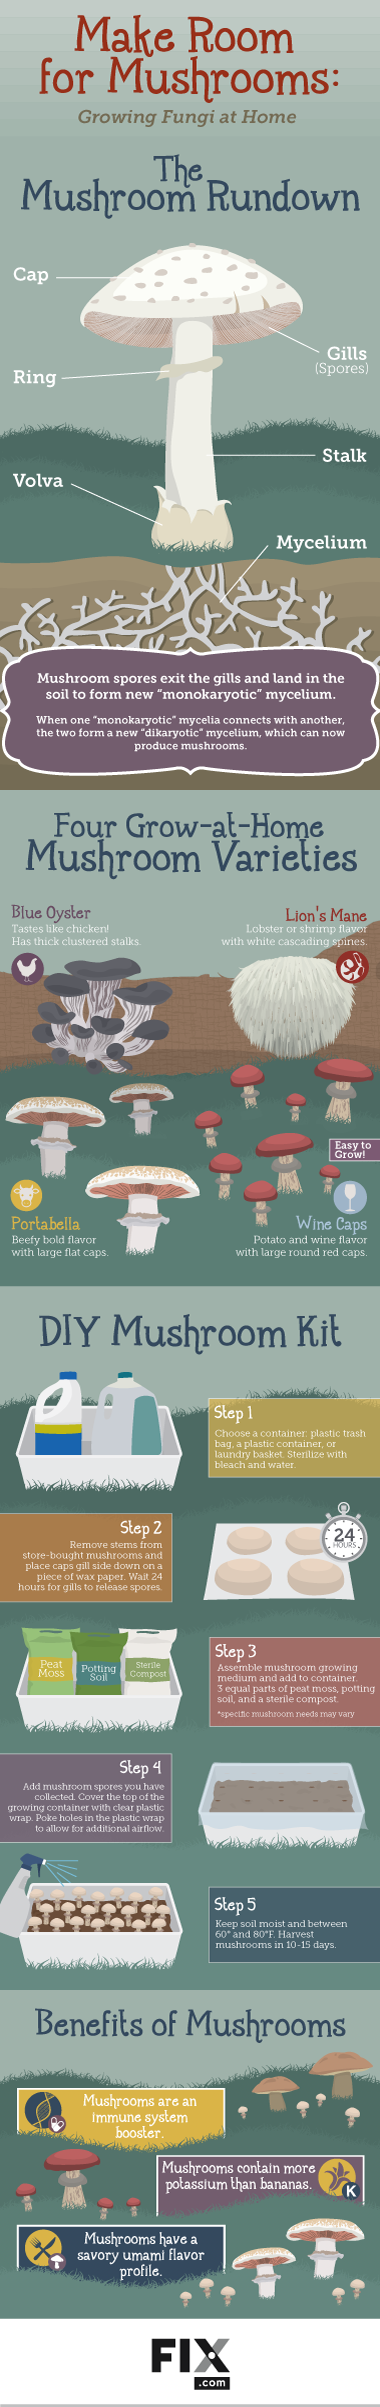 How to Grow Mushrooms at Home? a DIY Guide